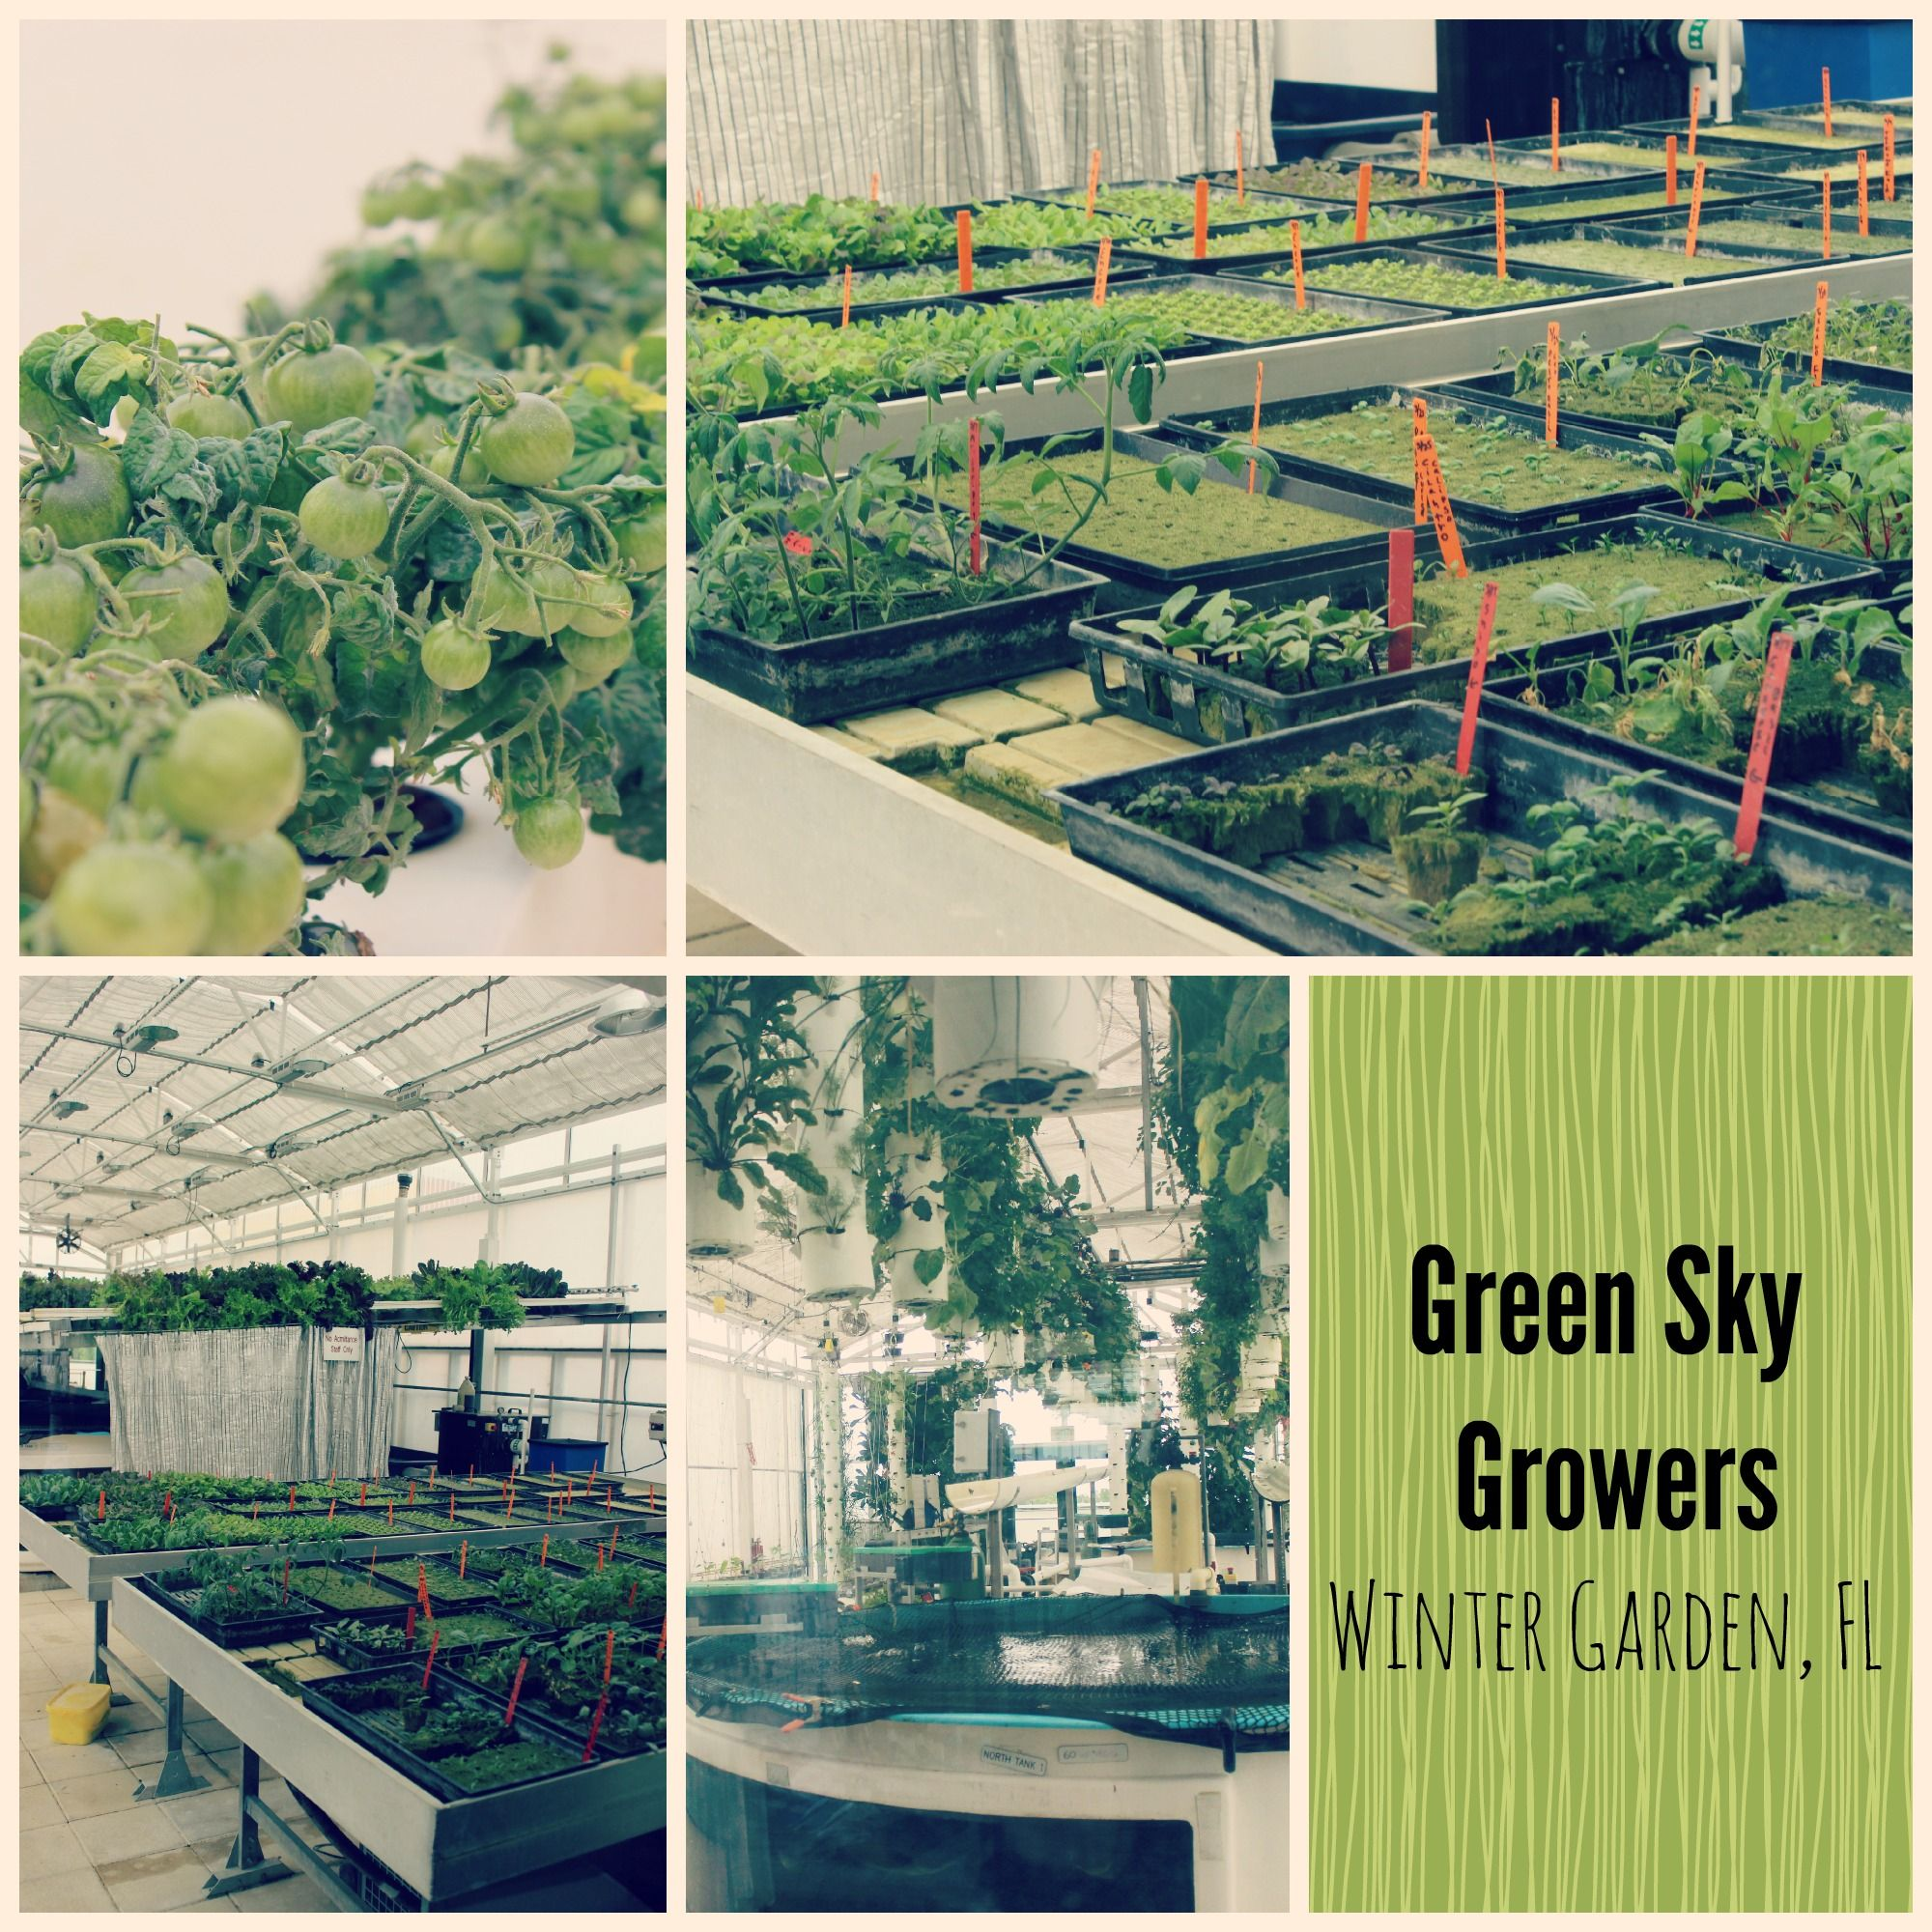 green sky growers is a local rooftop farm that produces fresh